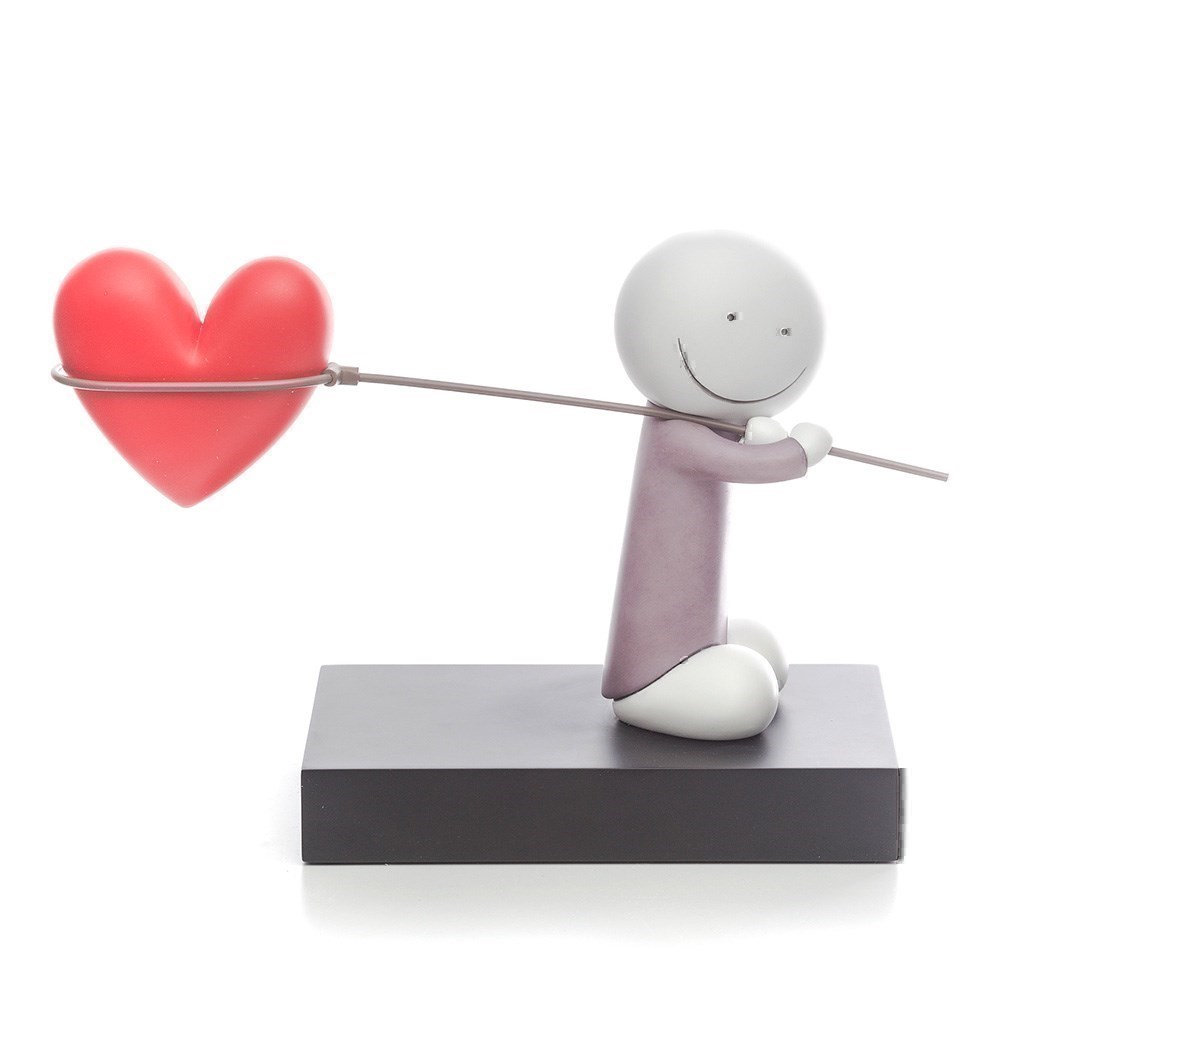 Caught Up In Love by Doug Hyde - Cold Cast Porcelain sized 12x8 inches. Available from Whitewall Galleries